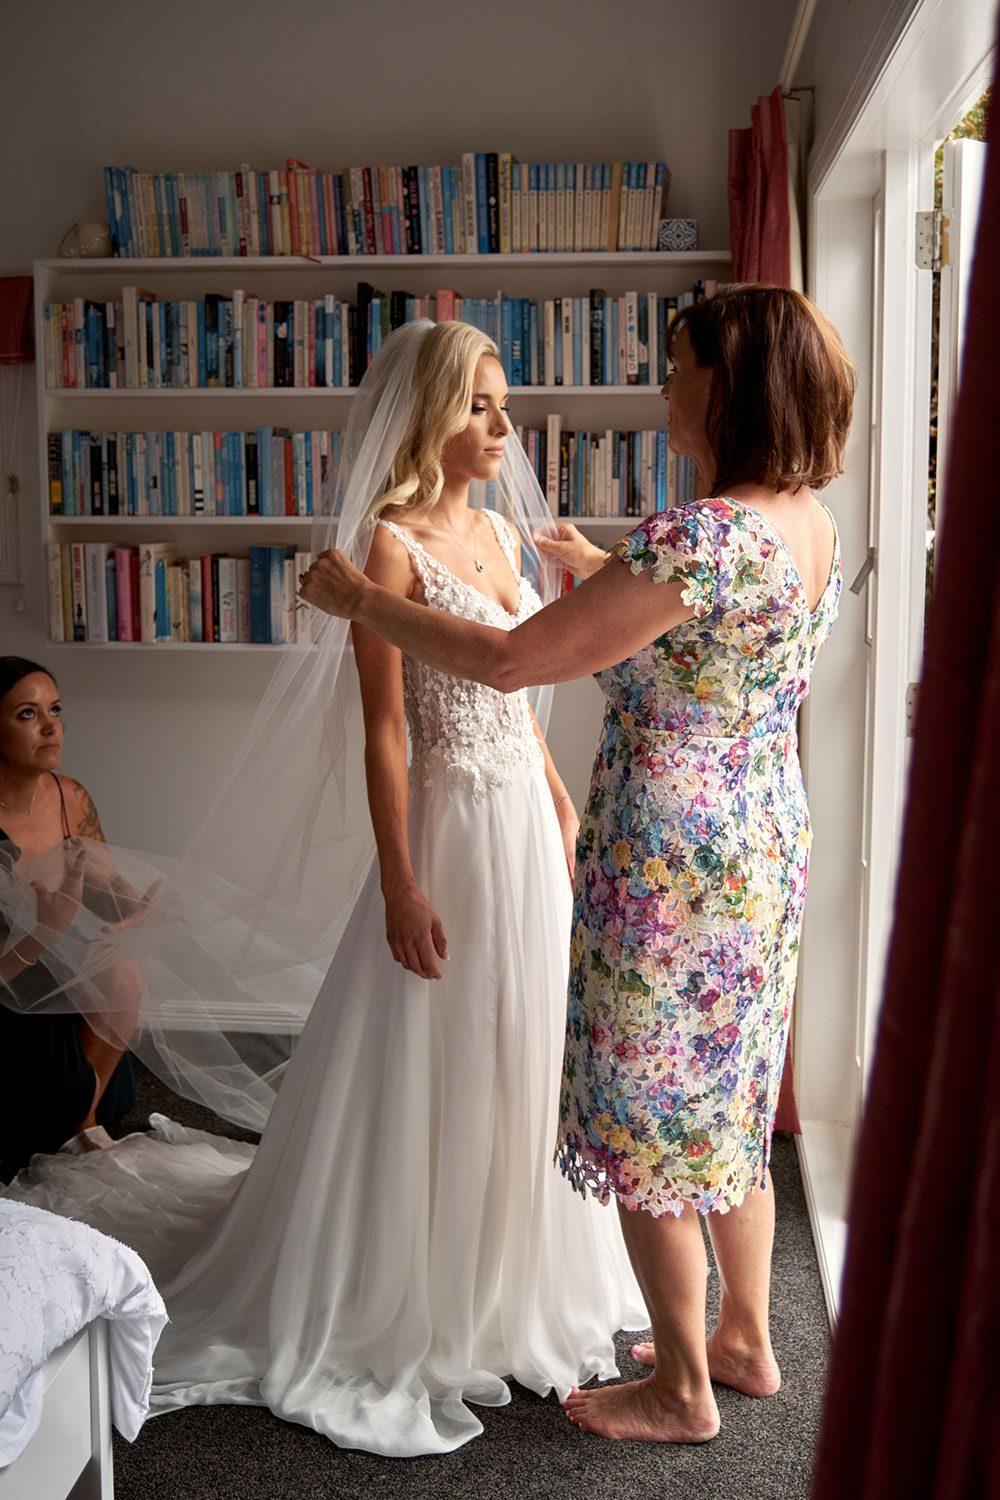 Bride wearing bespoke gown made of silk chiffon with delicate flower lace bodice by Vinka bridal designer Auckland - getting ready in window